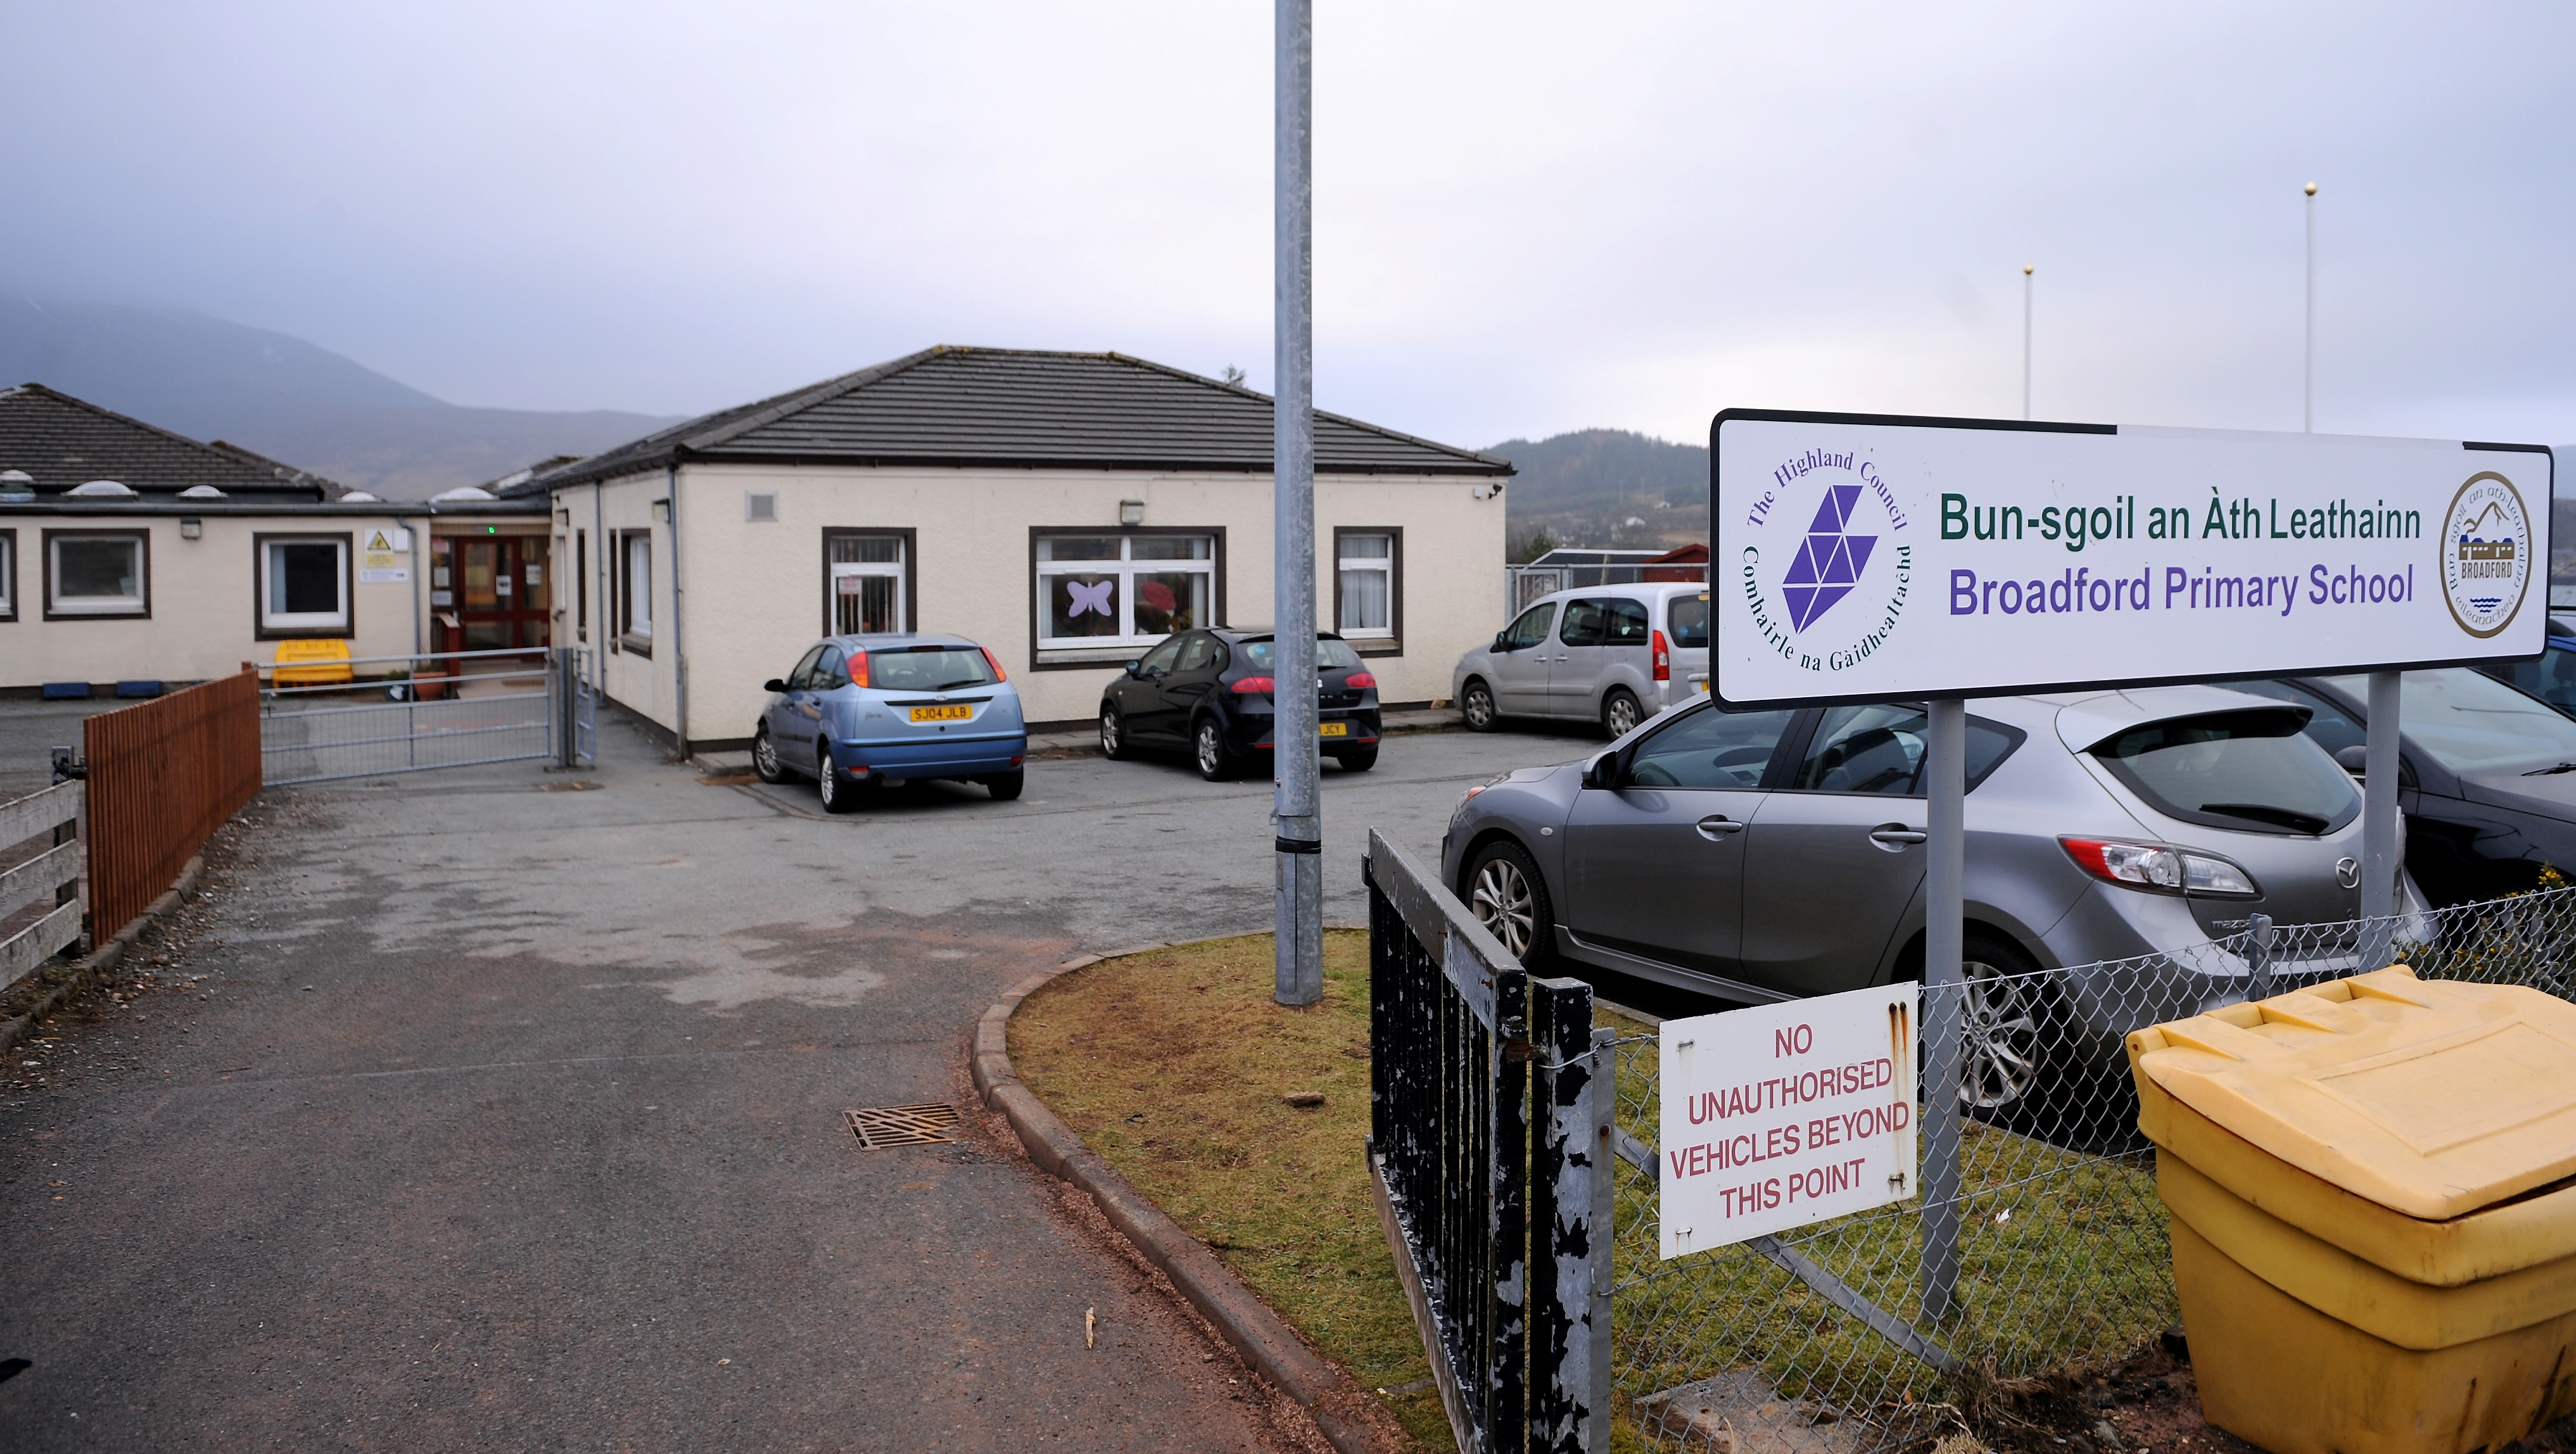 Broadford Primary School is now second  in the Highland Council's list of priority schools in need of upgrade